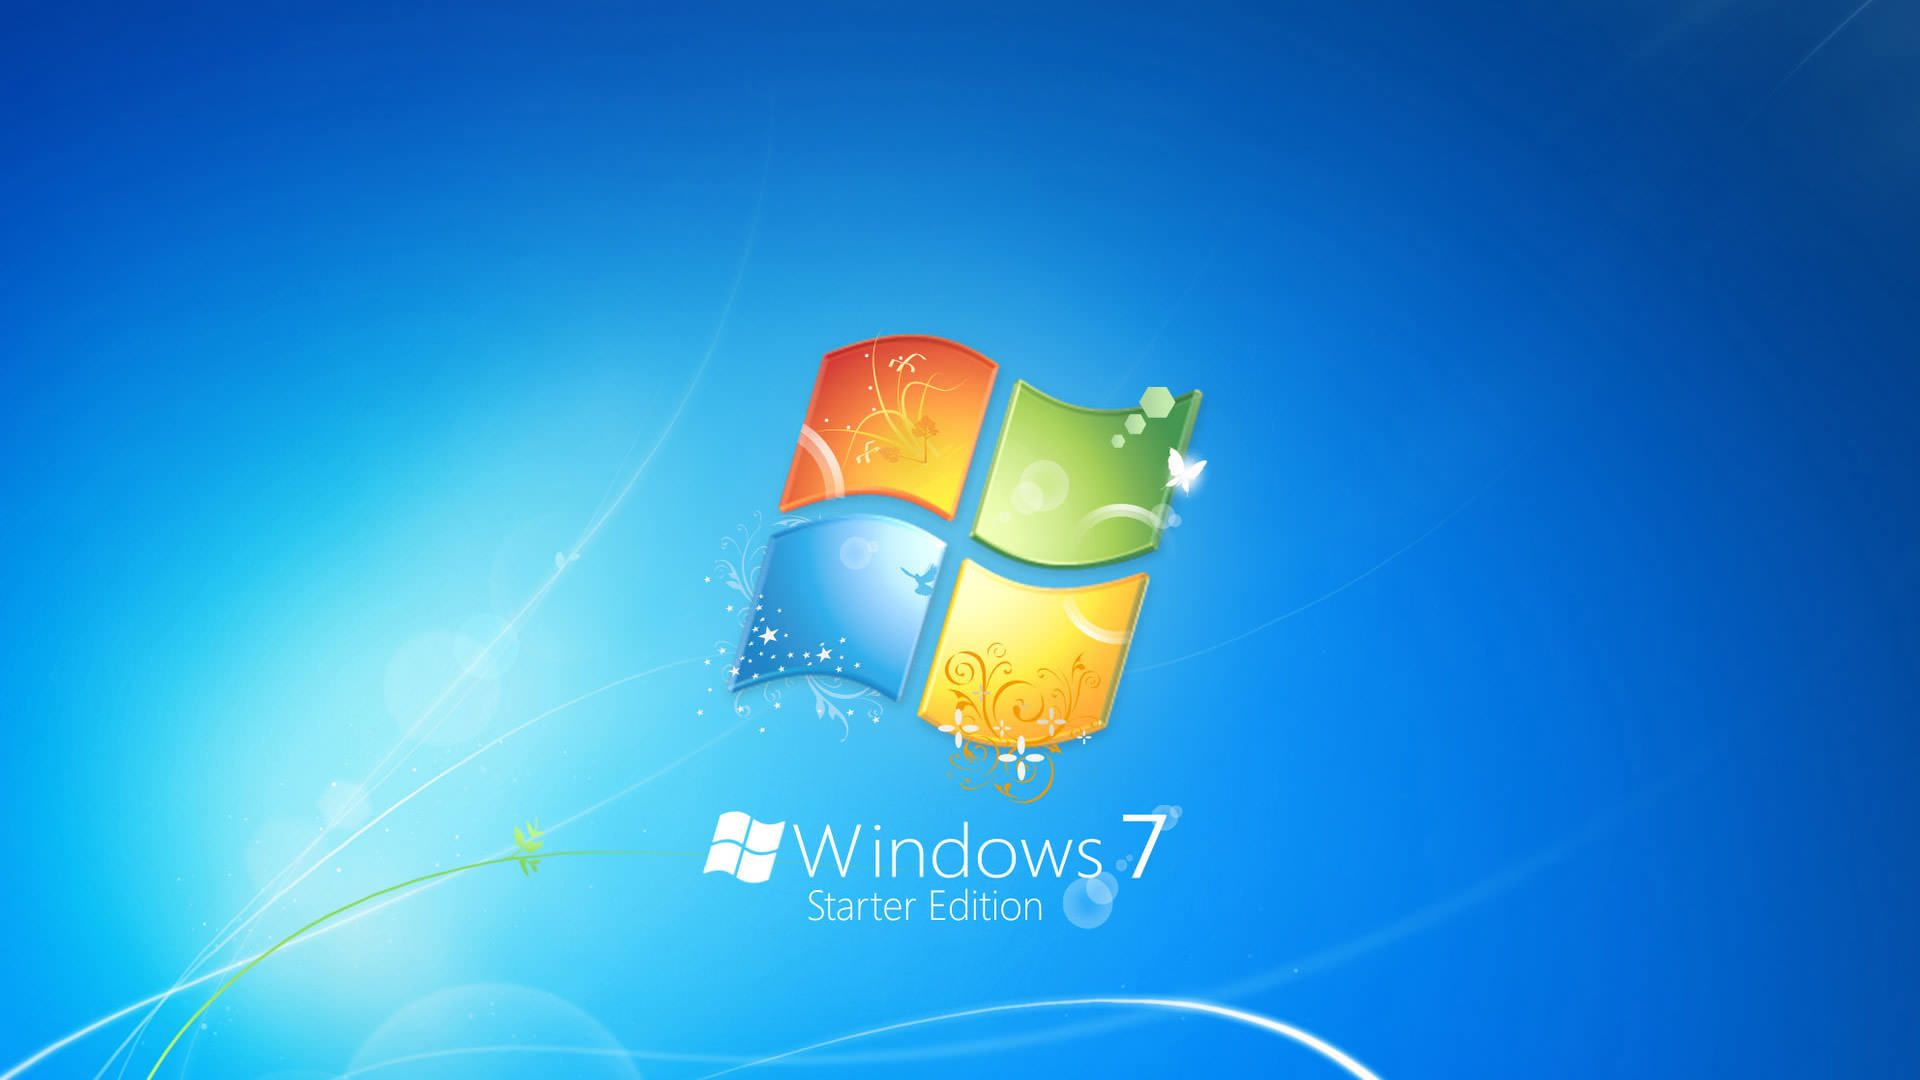 windows 7 desktop wallpaper location